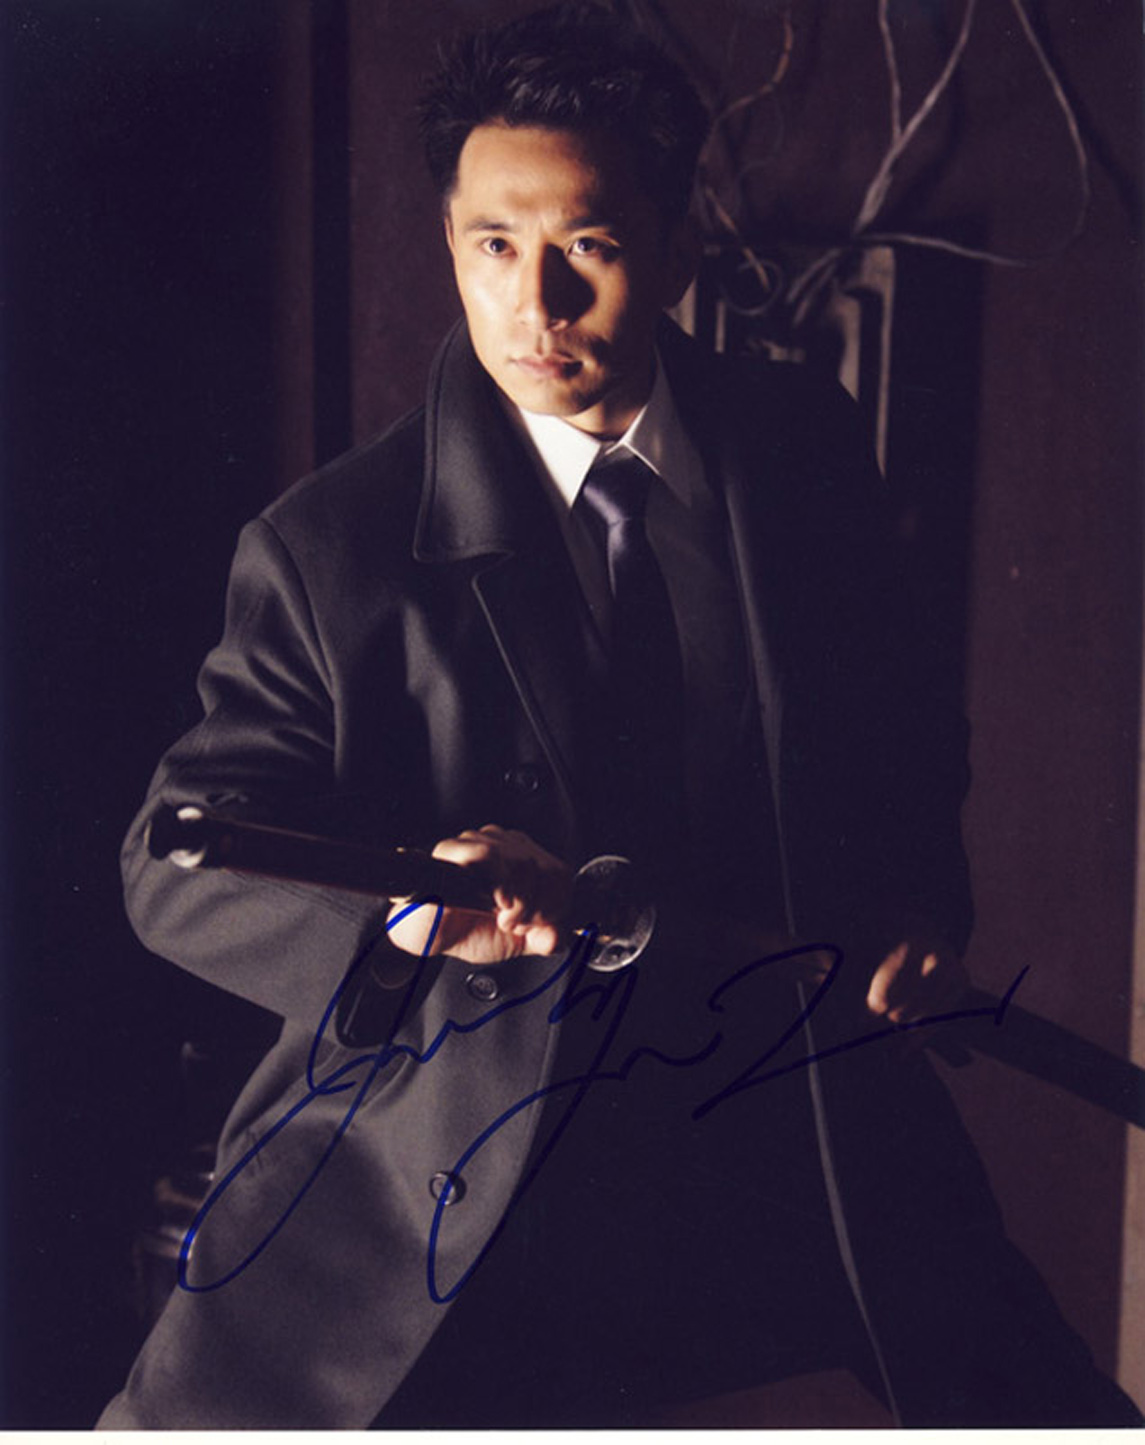 Blowout Sale! Heroes James Kyson Lee hand signed 10x8 photo. This beautiful 10x8 hand signed photo